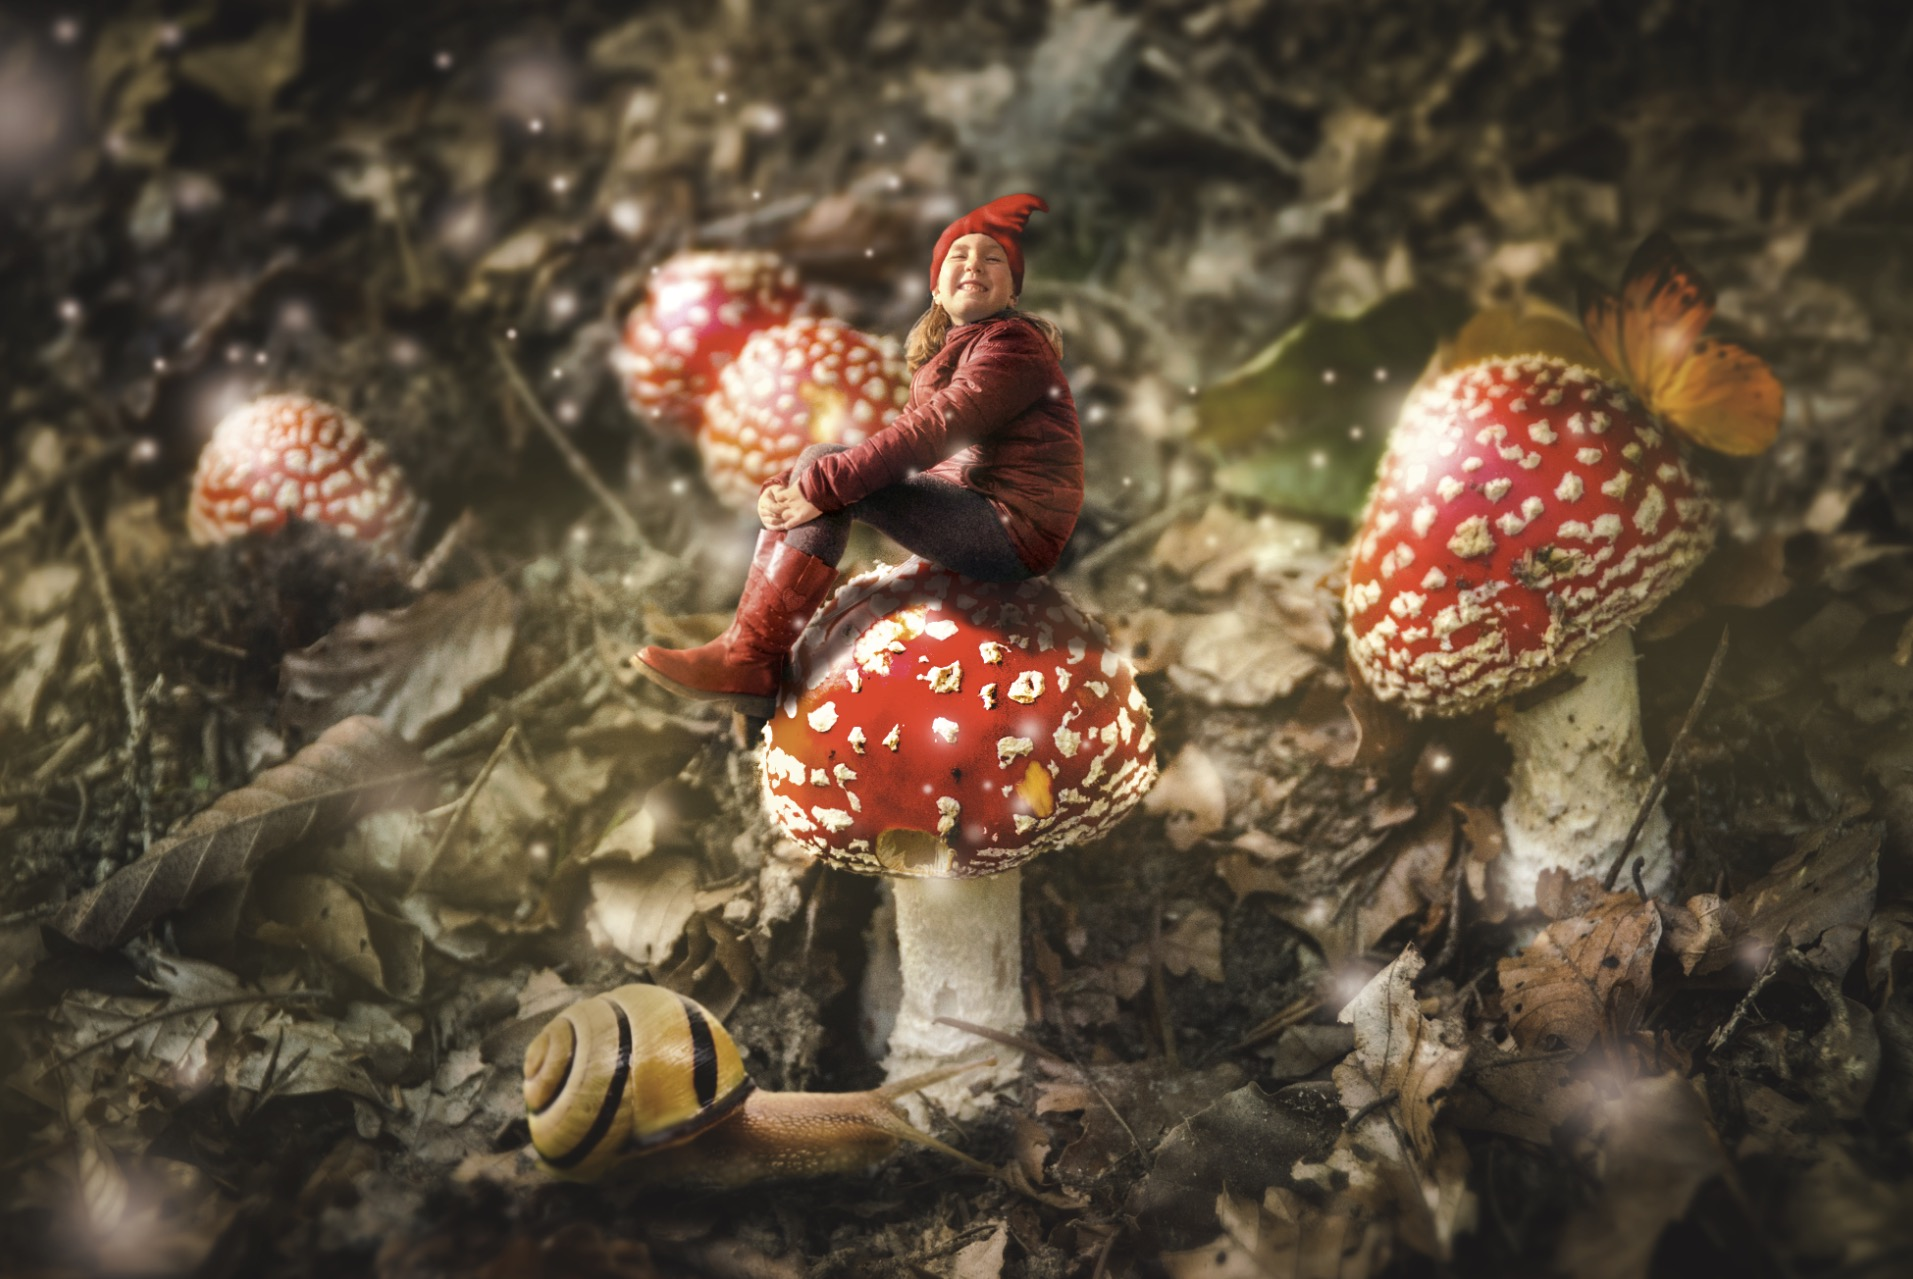 Surreal Photography - Romi the Mushroom Gnome